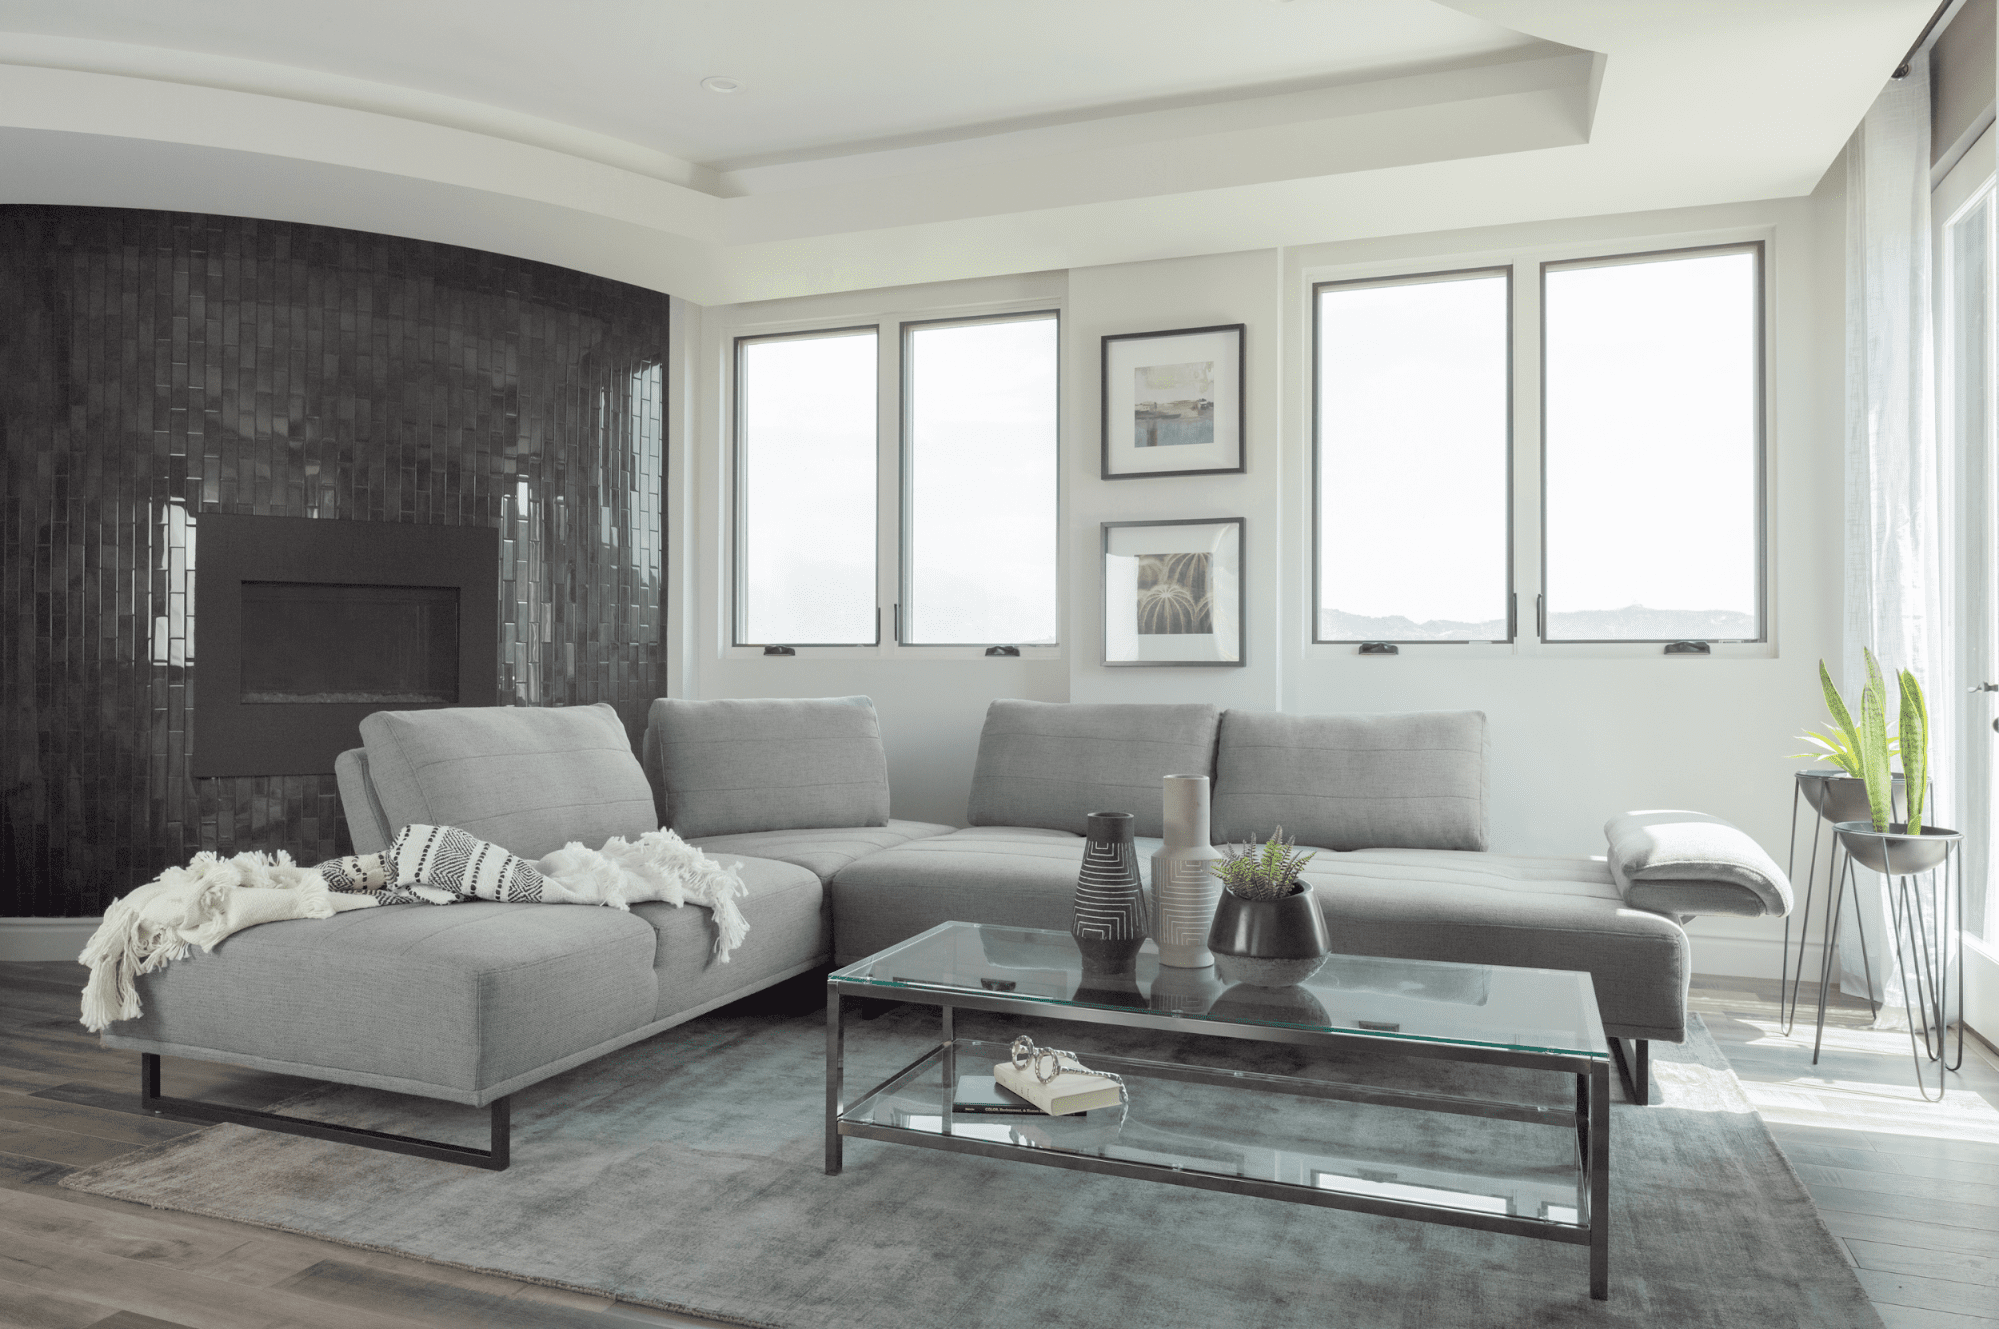 Living room layout ideas: Arden 2-piece adjustable back sectional taupe